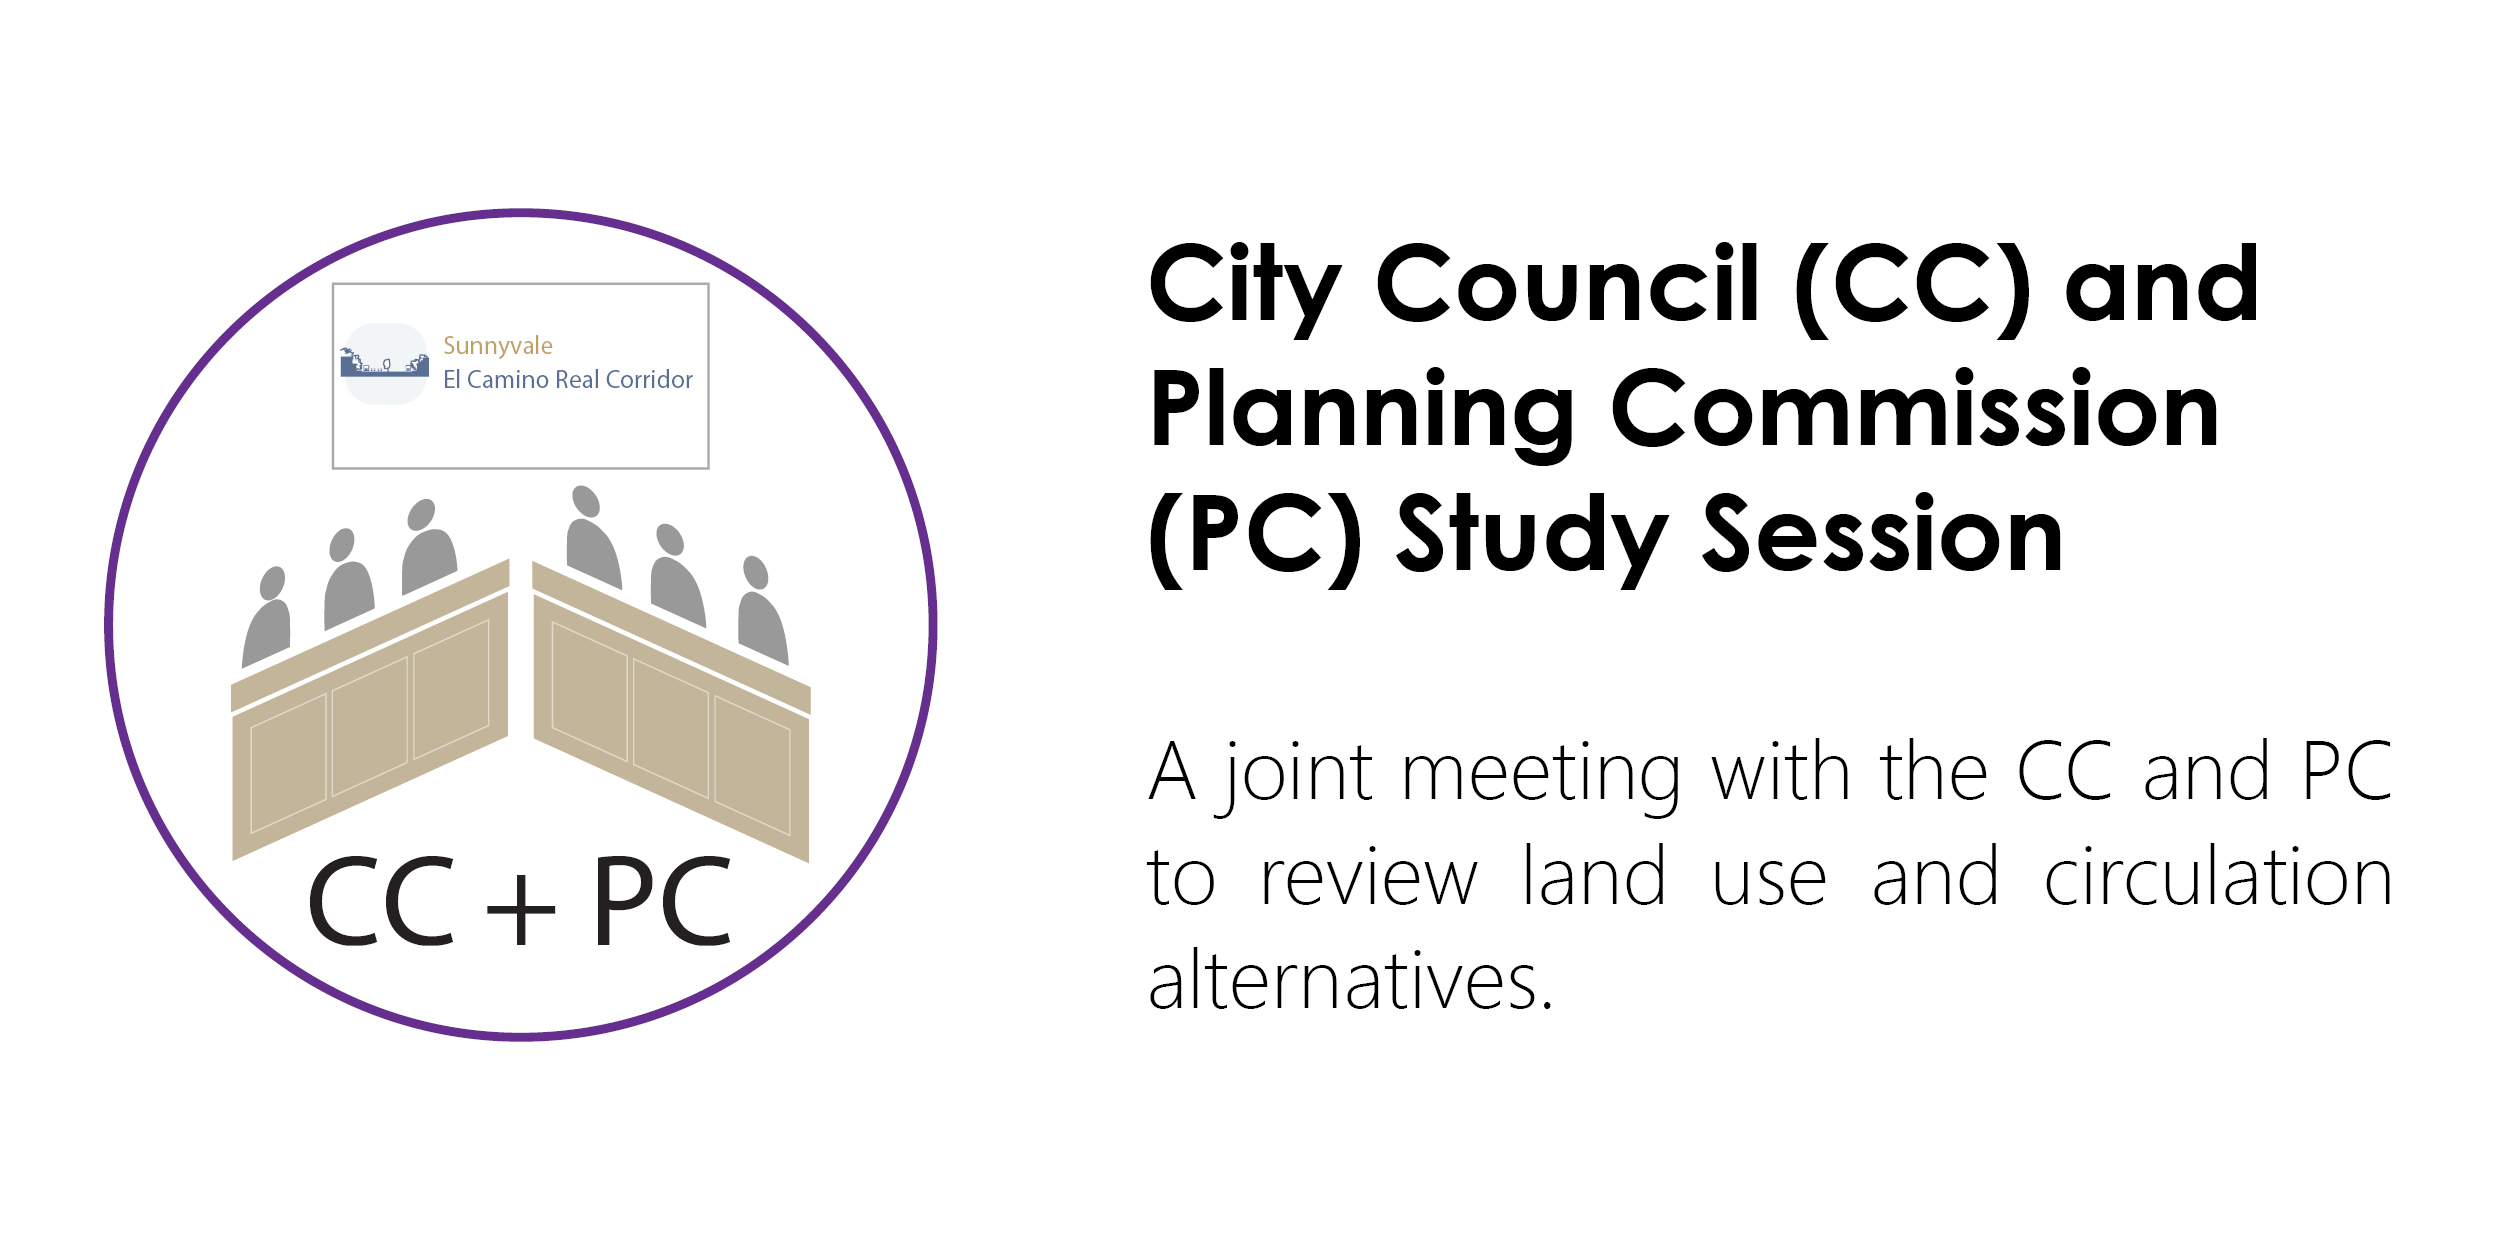 Logo and description of City Council and Planning Commission Study Session.